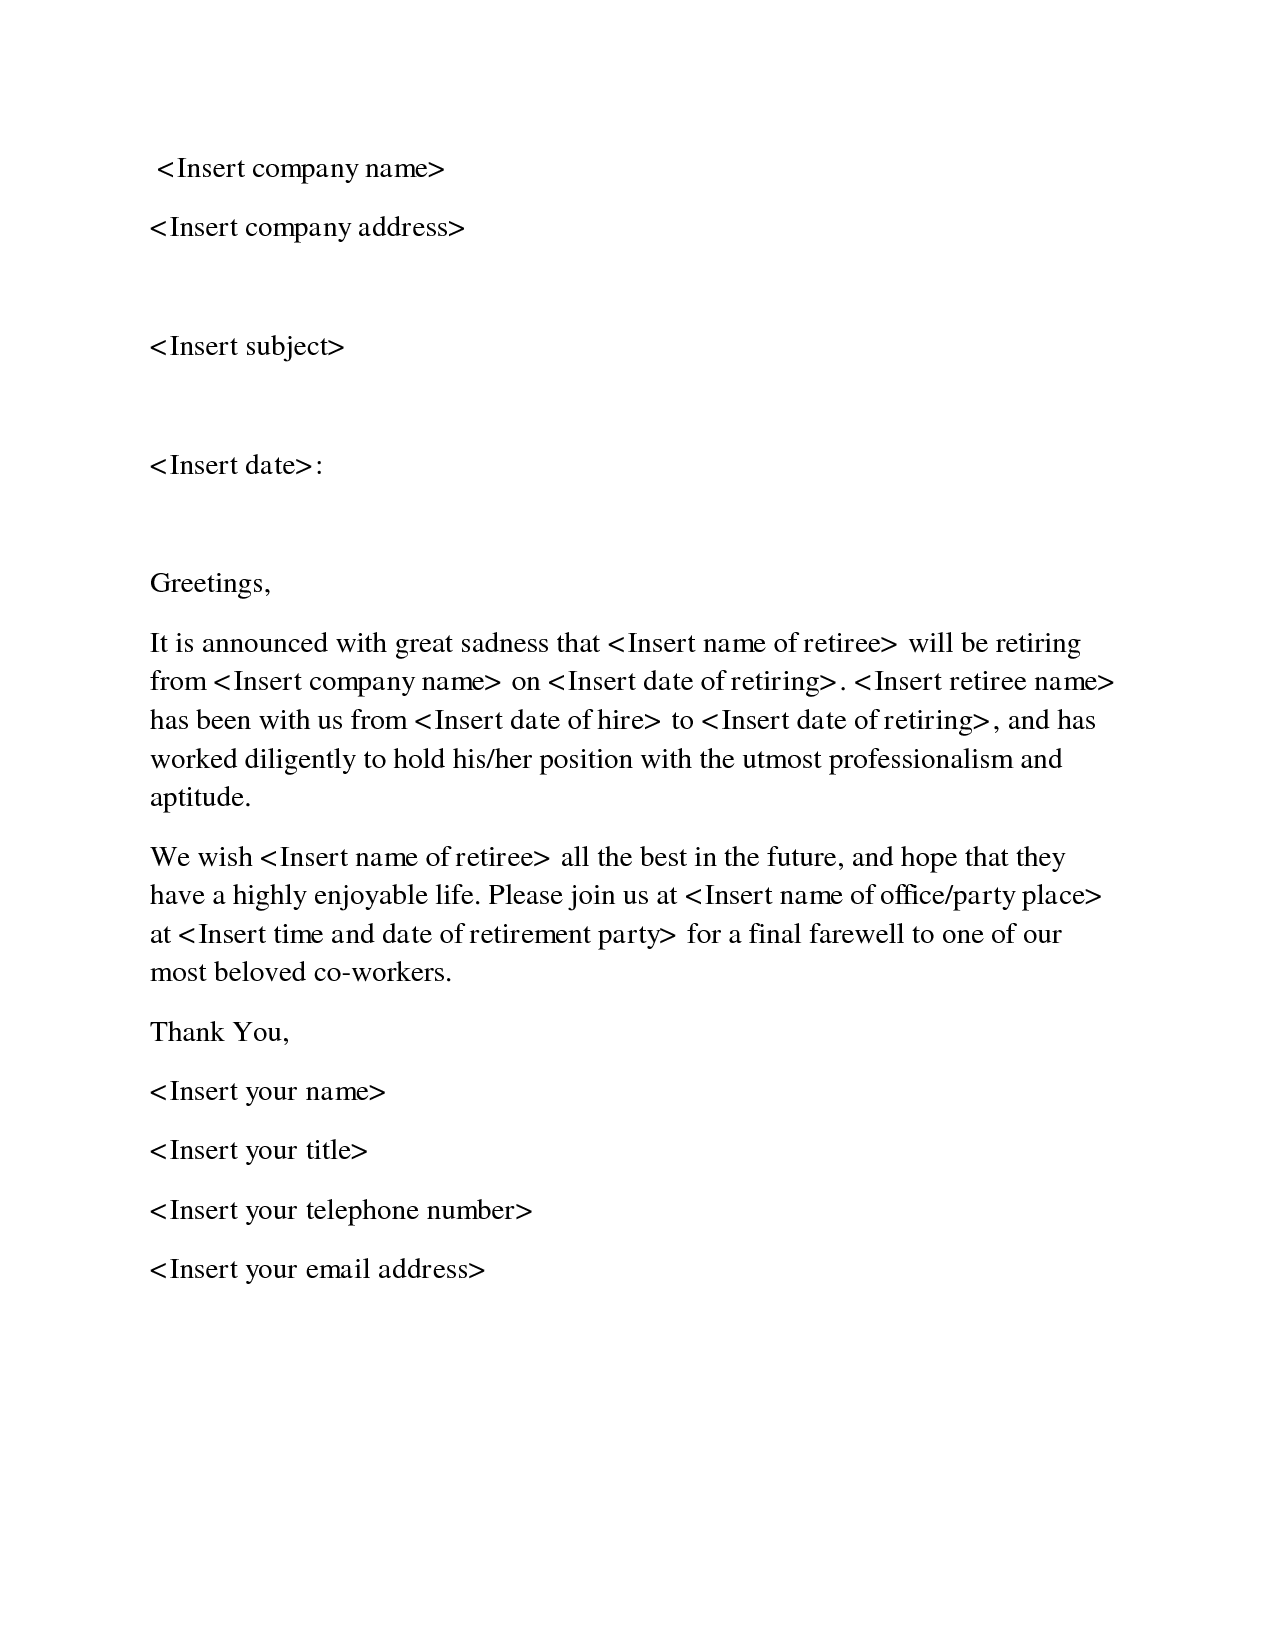 Farewell Letter to Coworkers – A Great Example